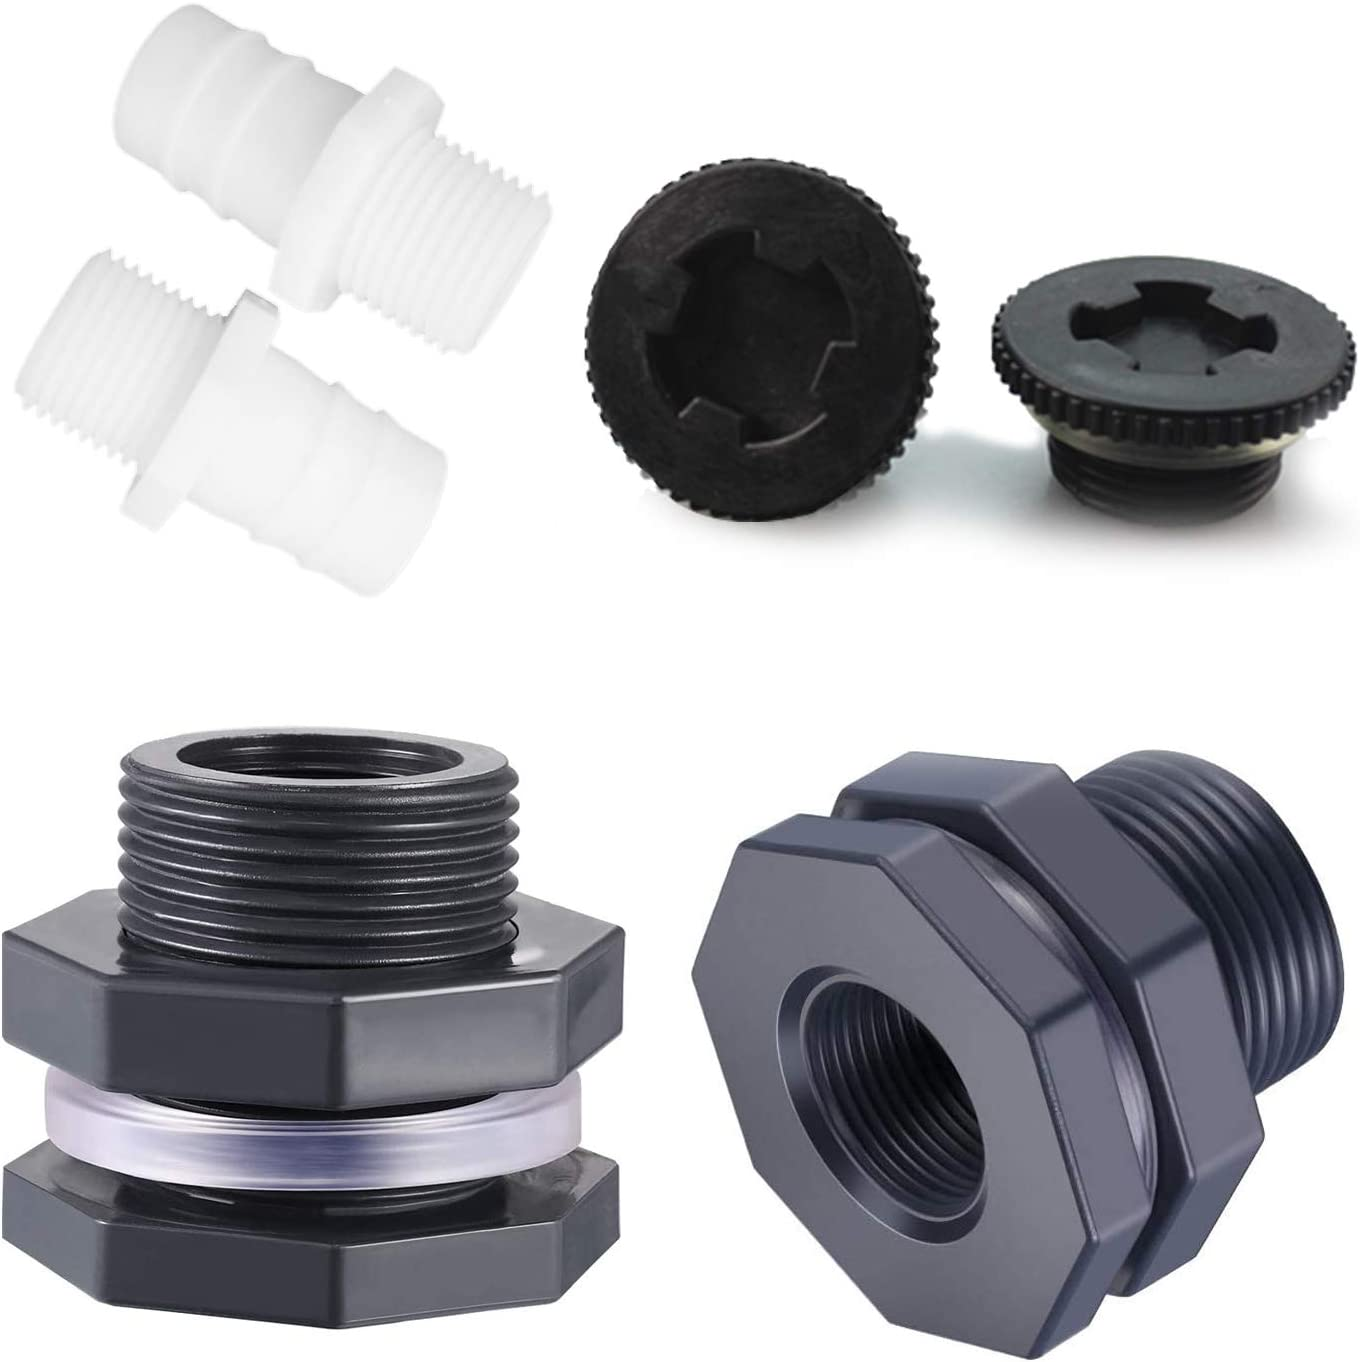 2 Pieces of 3/4 Inch PVC Next-door Accessories, Rain Bucket Garden Faucet Kit, Partition Mounting Adapter, with Plugs, for Aquariums, Water Tanks, Bathtubs, Sinks (Gift Two Water Pipe Connections)